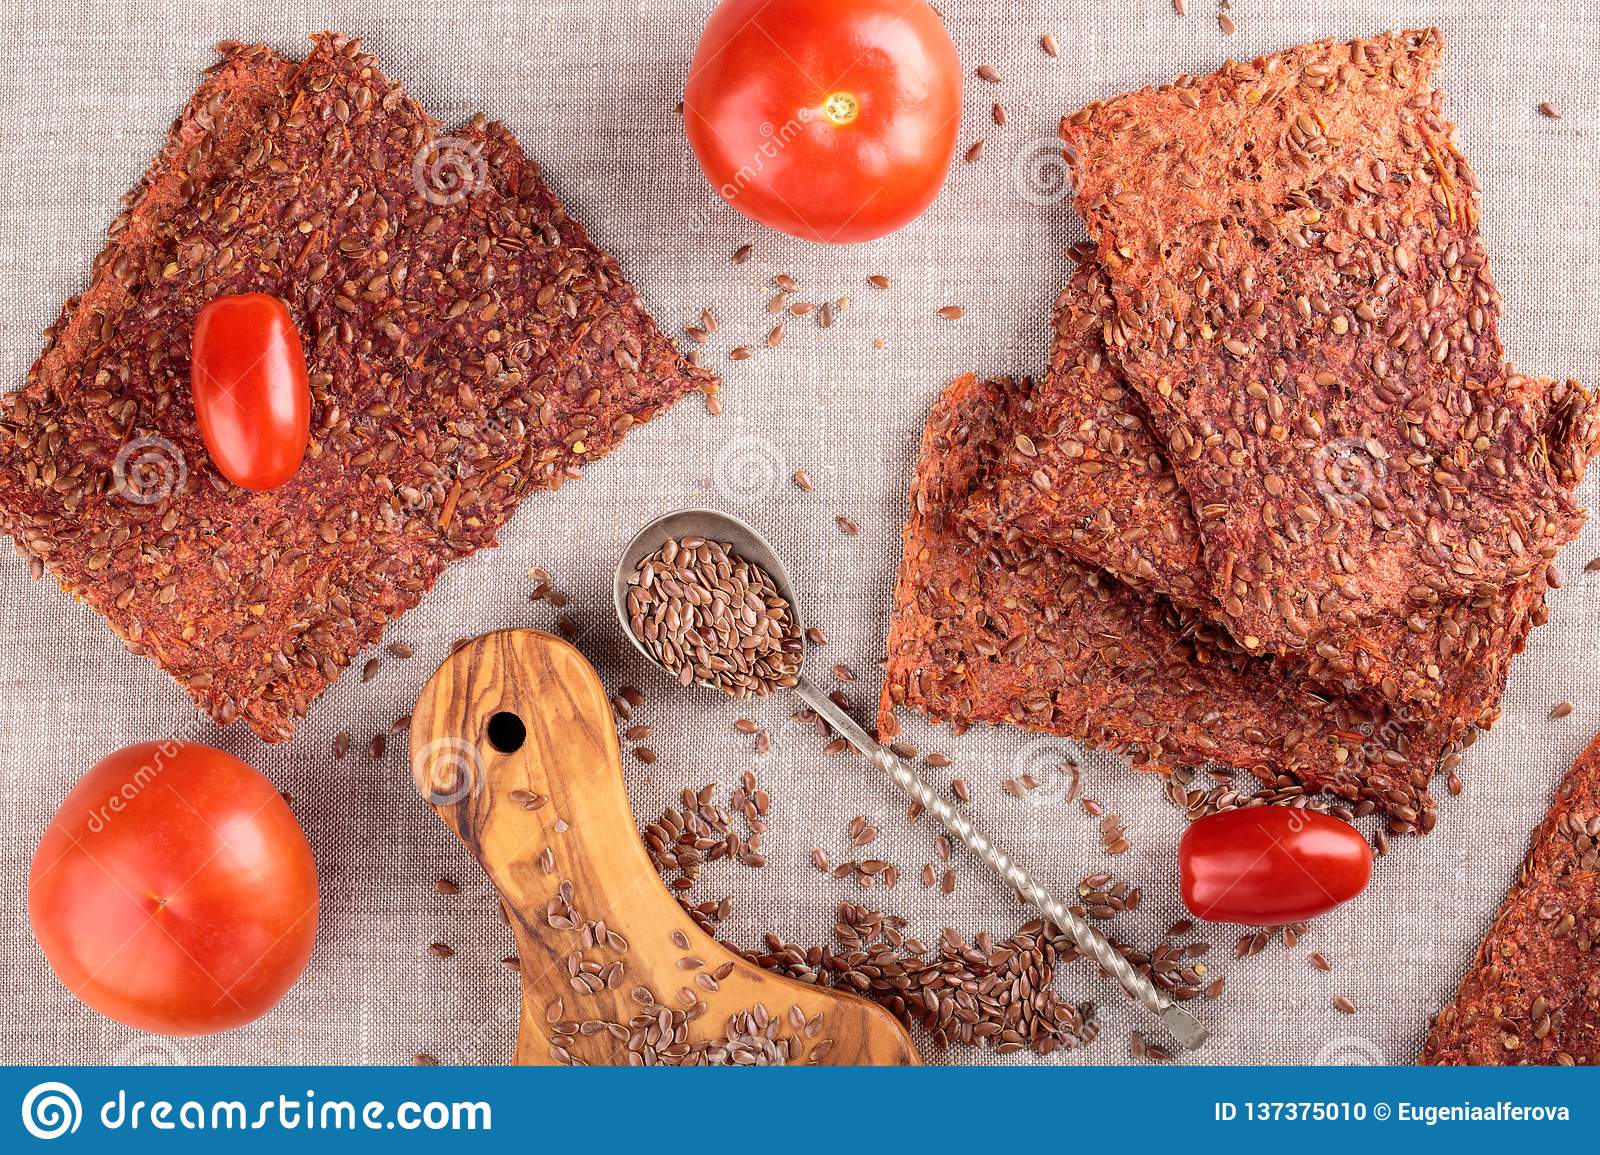 Vegetables crispbread crackers with flax seeds and tomatoes